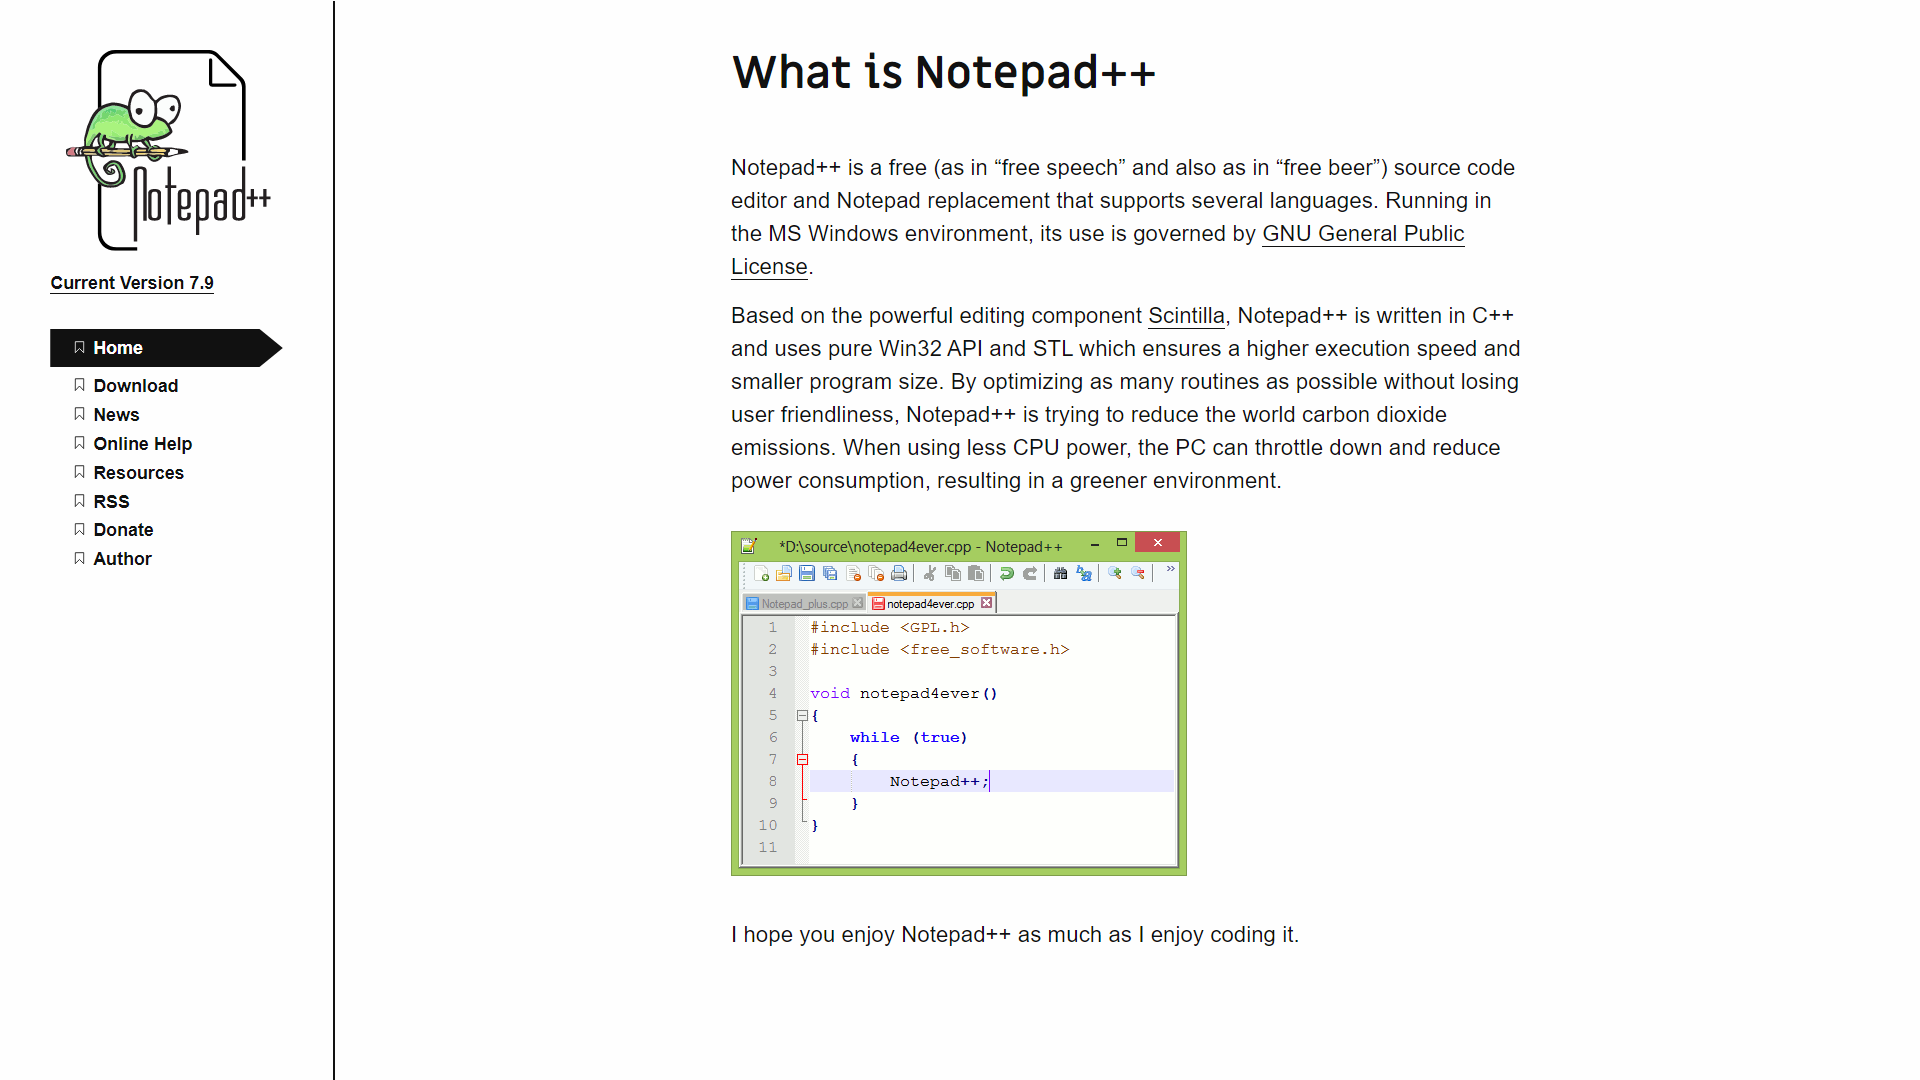 Notepade++ Open Source Web Development Tools